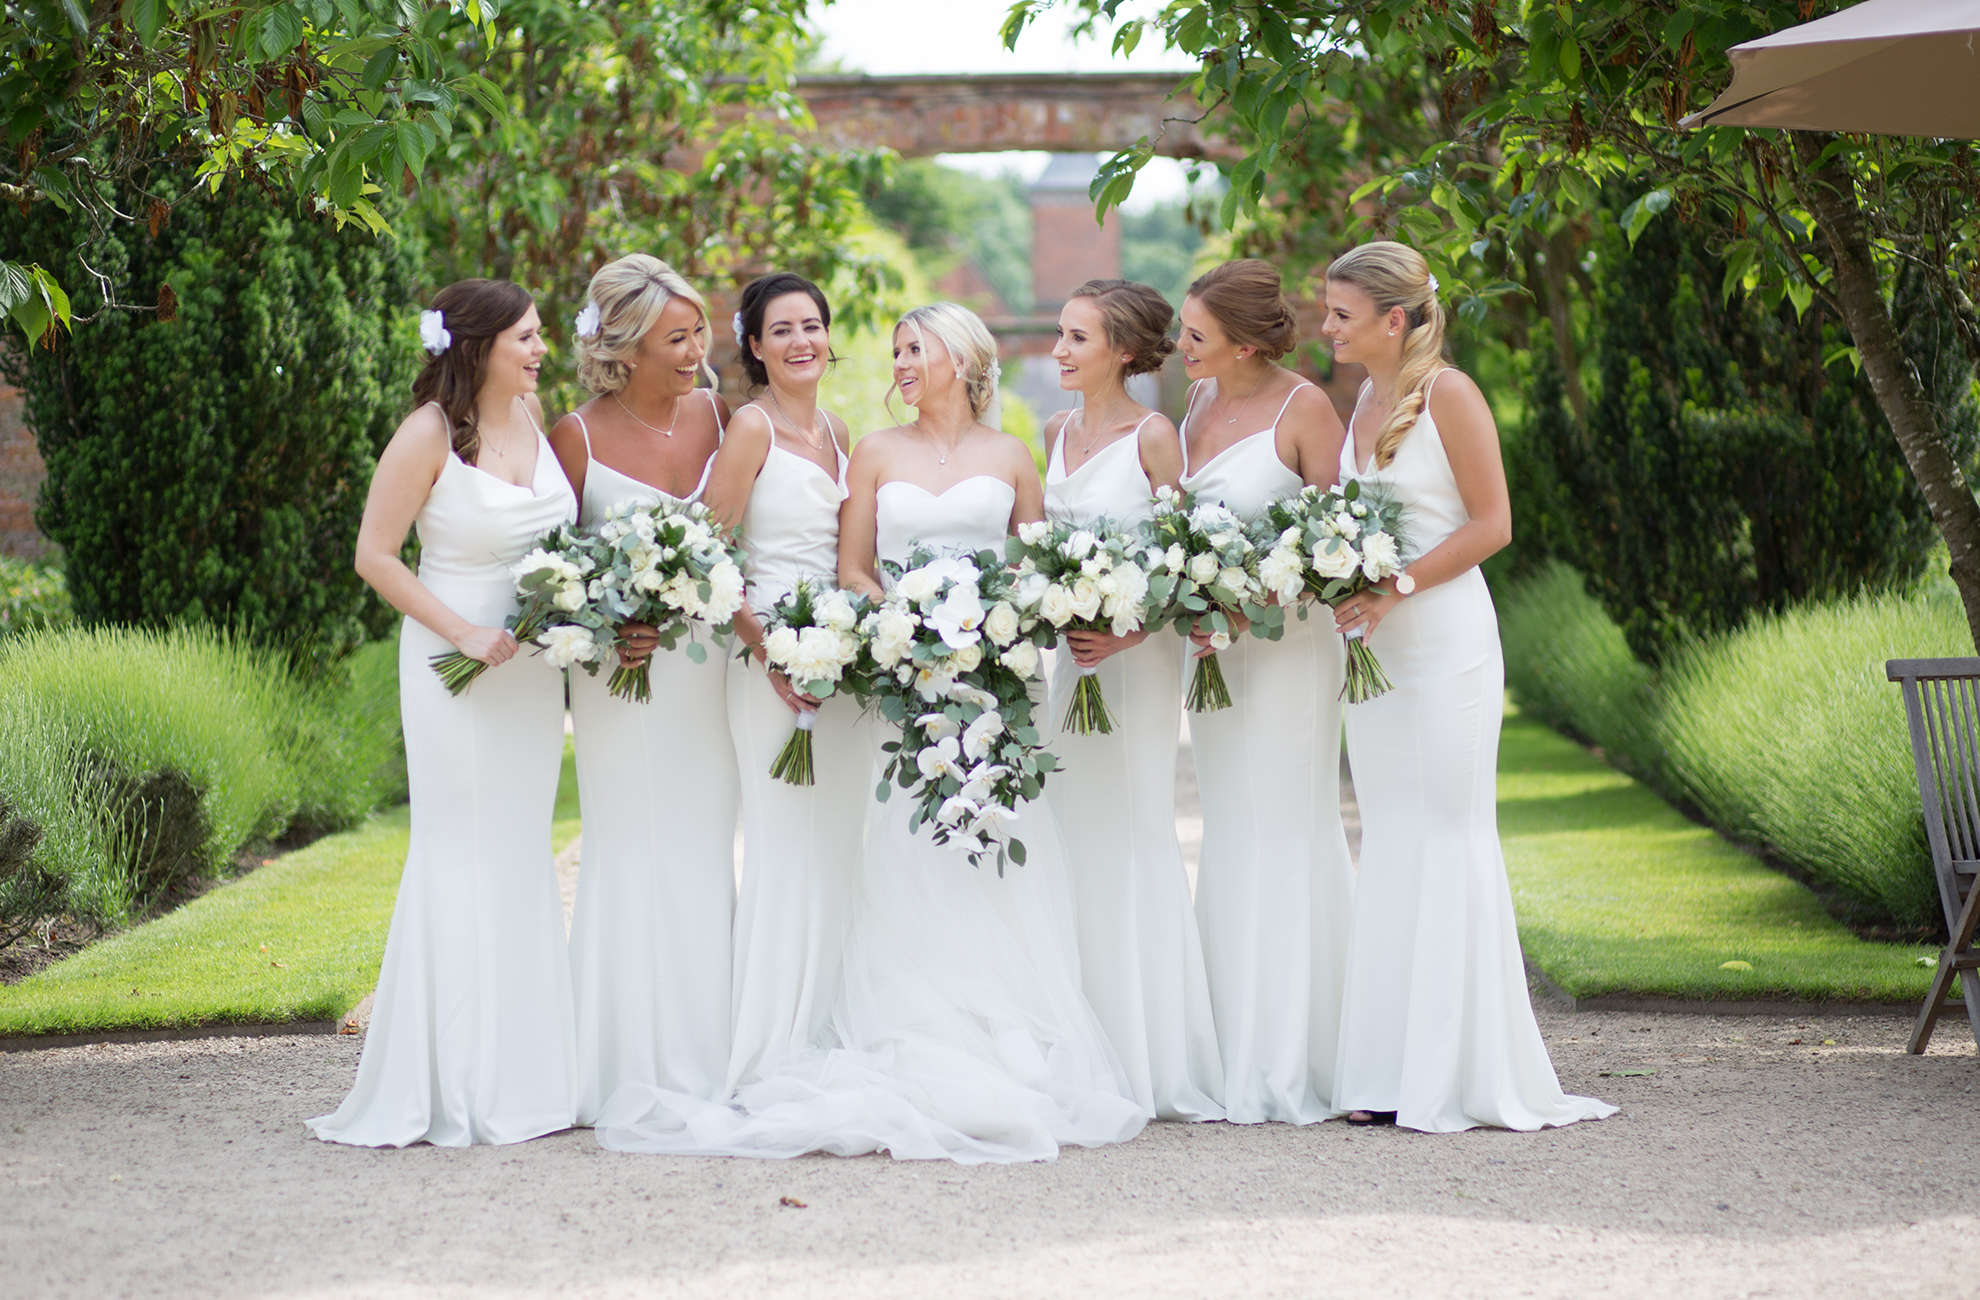 Bridesmaids hold white rose wedding bouquets in the gardens at Combermere Abbey